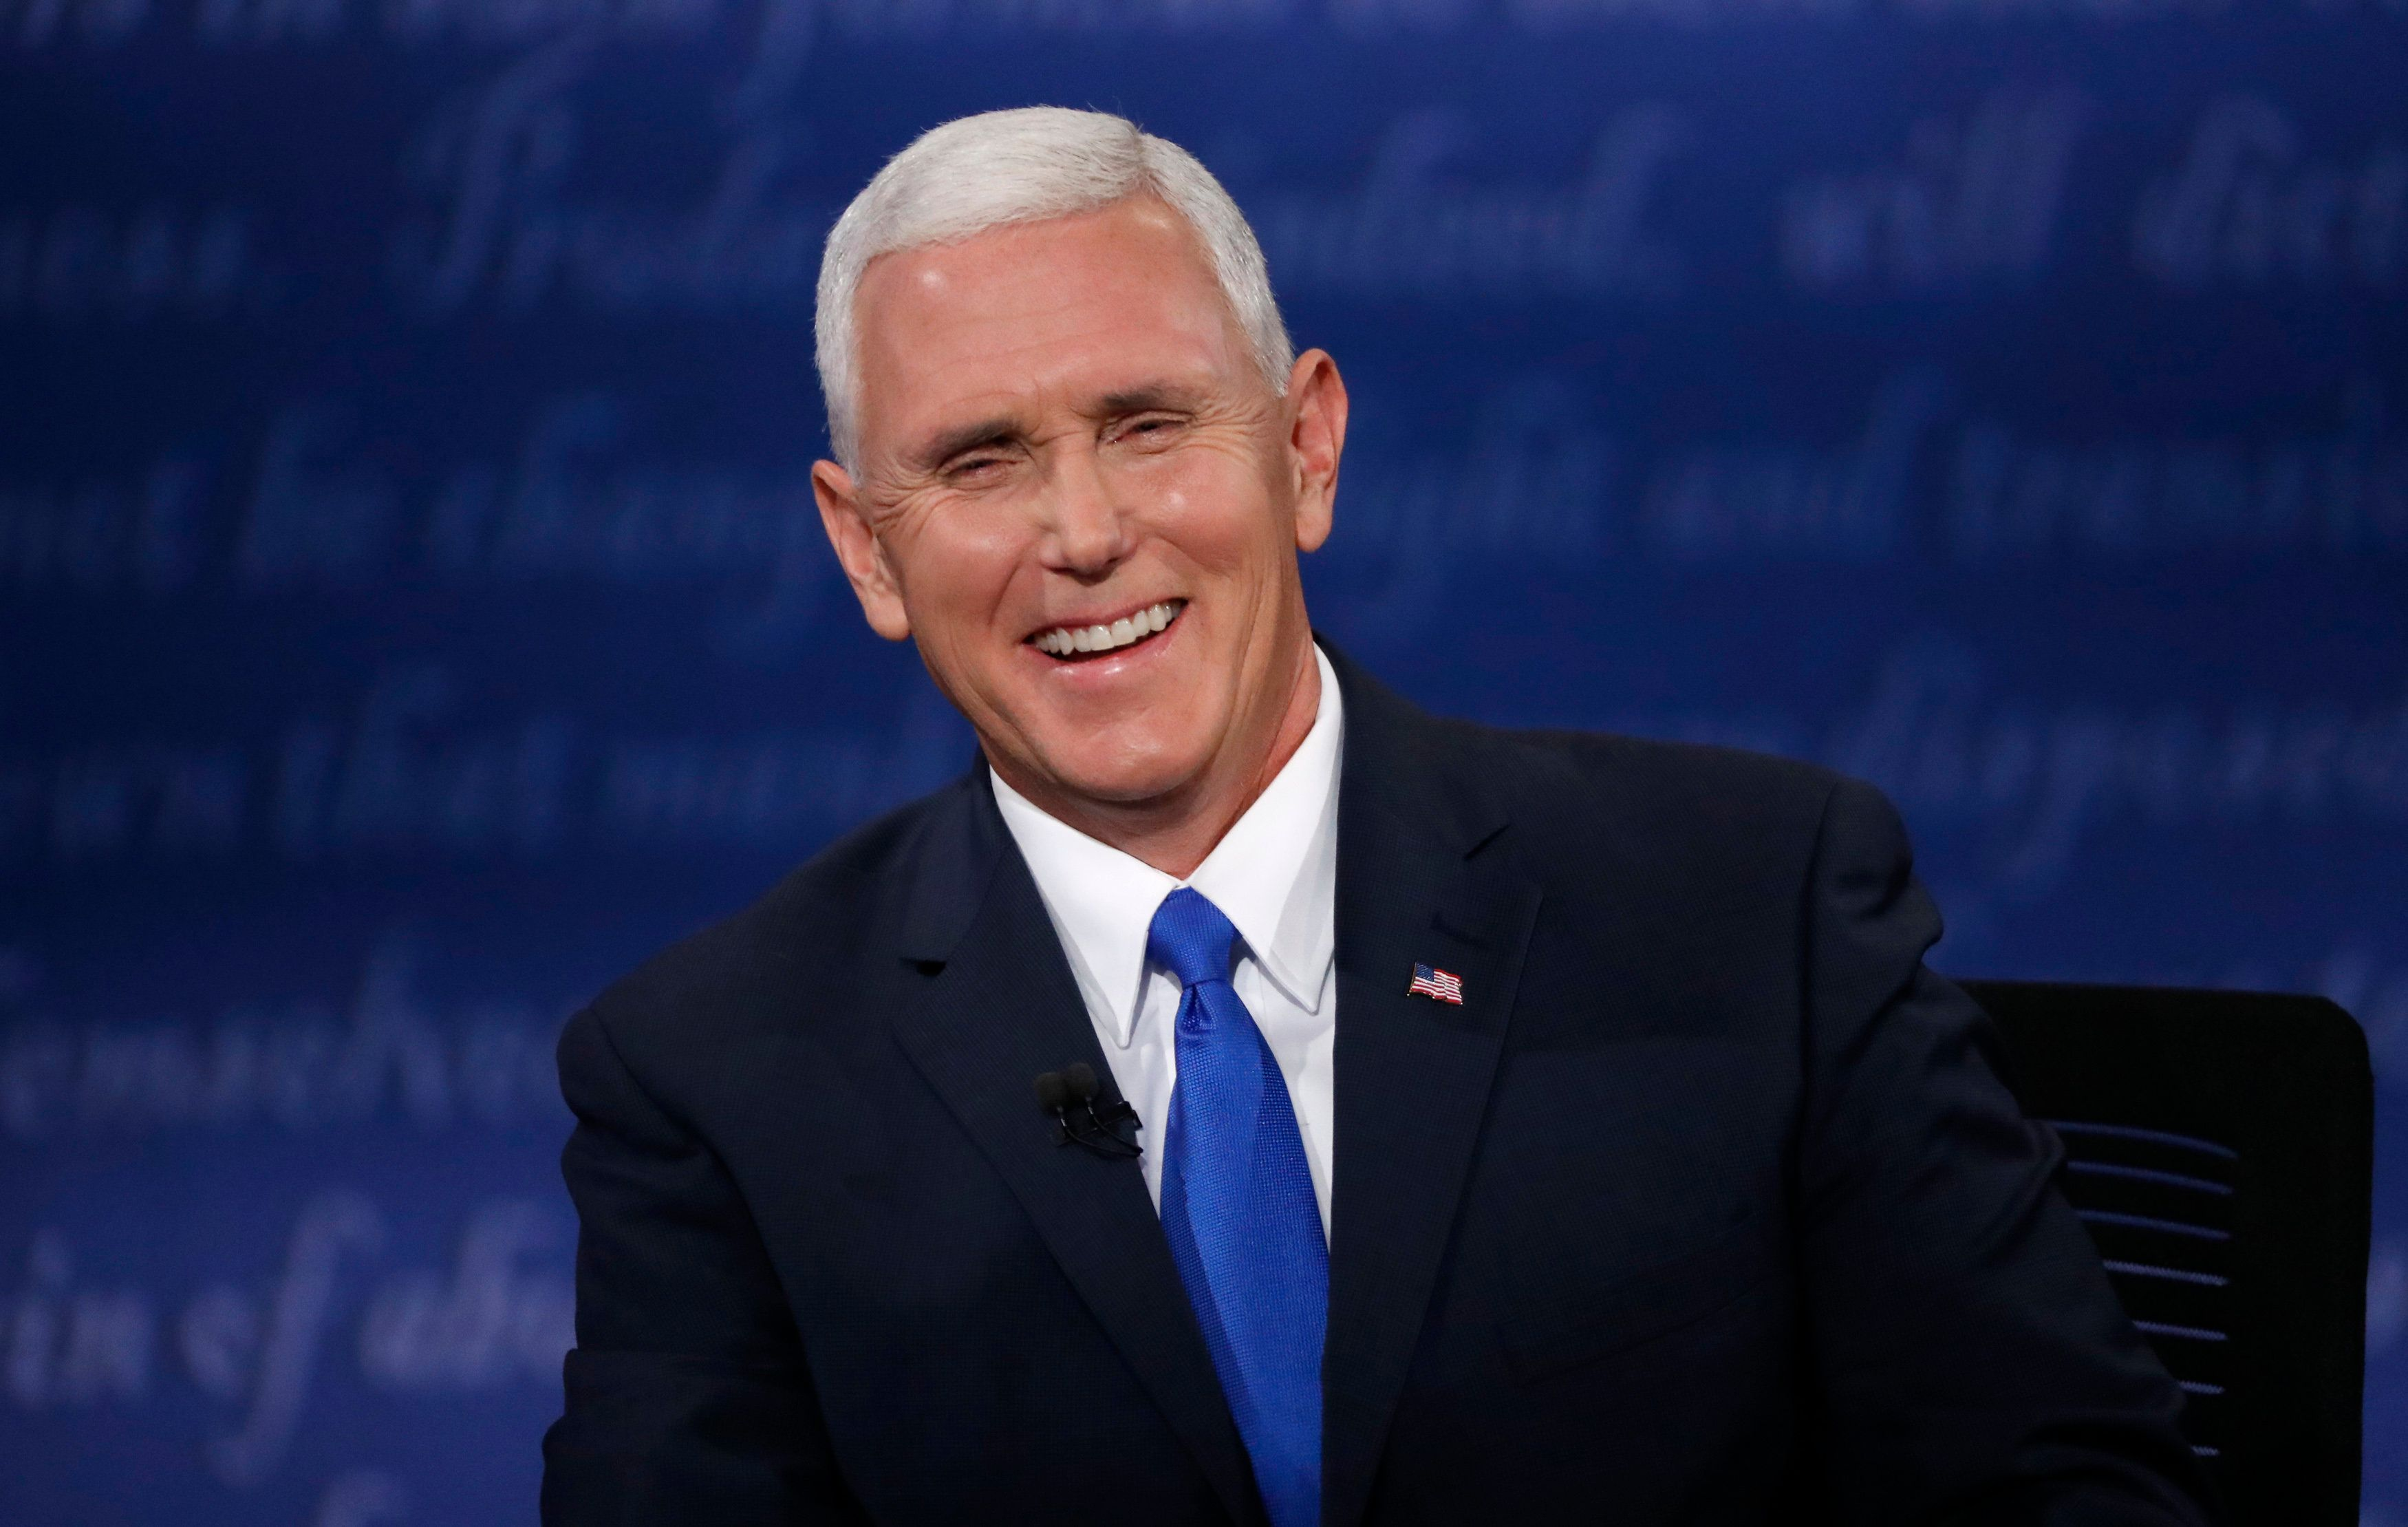 Republican U.S. vice presidential nominee Governor Mike Pence laughs as he discusses an issue with Democratic U.S. vice presidential nominee Senator Tim Kaine (off camera) during their vice presidential debate at Longwood University in Farmville, Virginia, U.S., October 4, 2016.       REUTERS/Jonathan Ernst